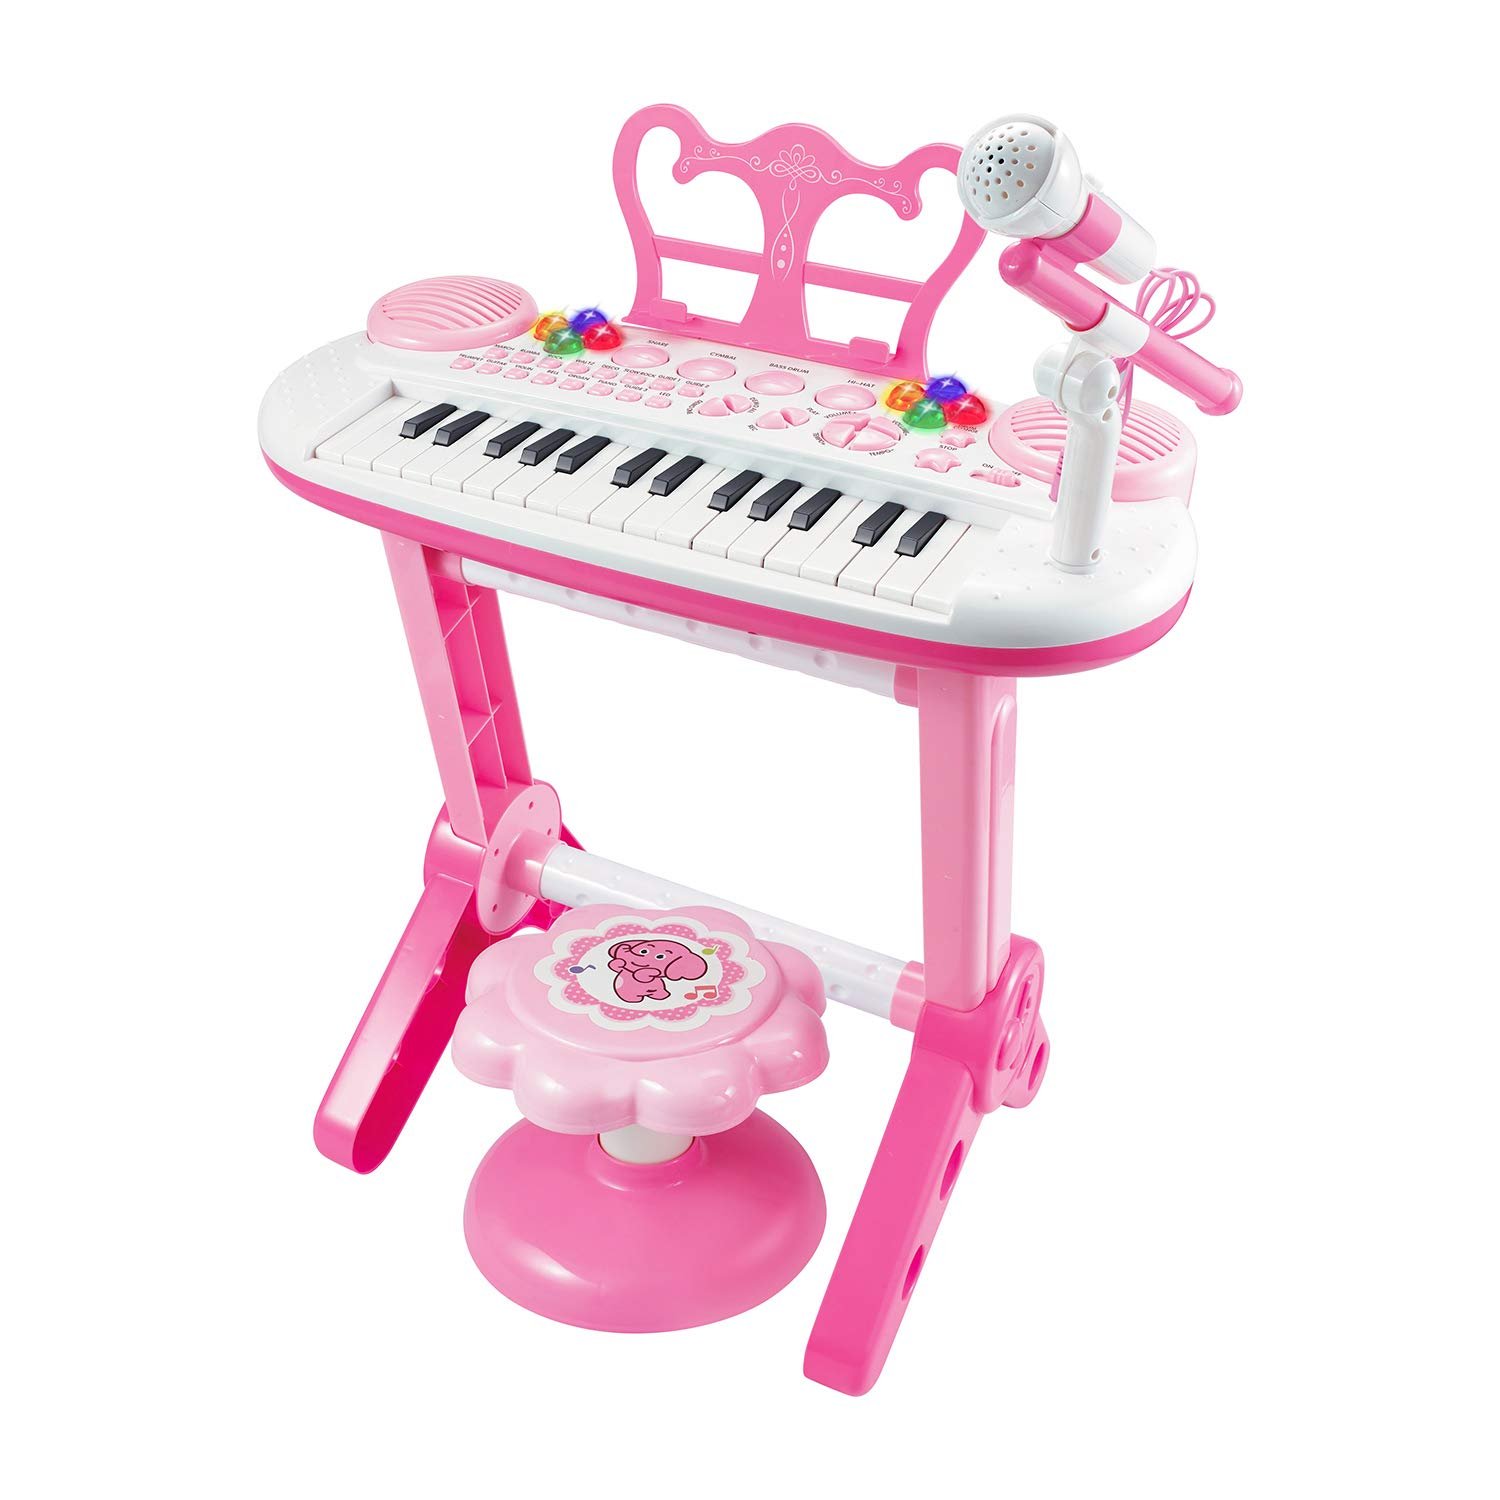 TWFRIC Toy Piano Keyboard for Kids with Microphone, 31-Key Electronic Musical Instrument Piano Toy Keyboard with Music Stand and Stool for Kids Birthday Christmas Day Gifts by TWFRIC